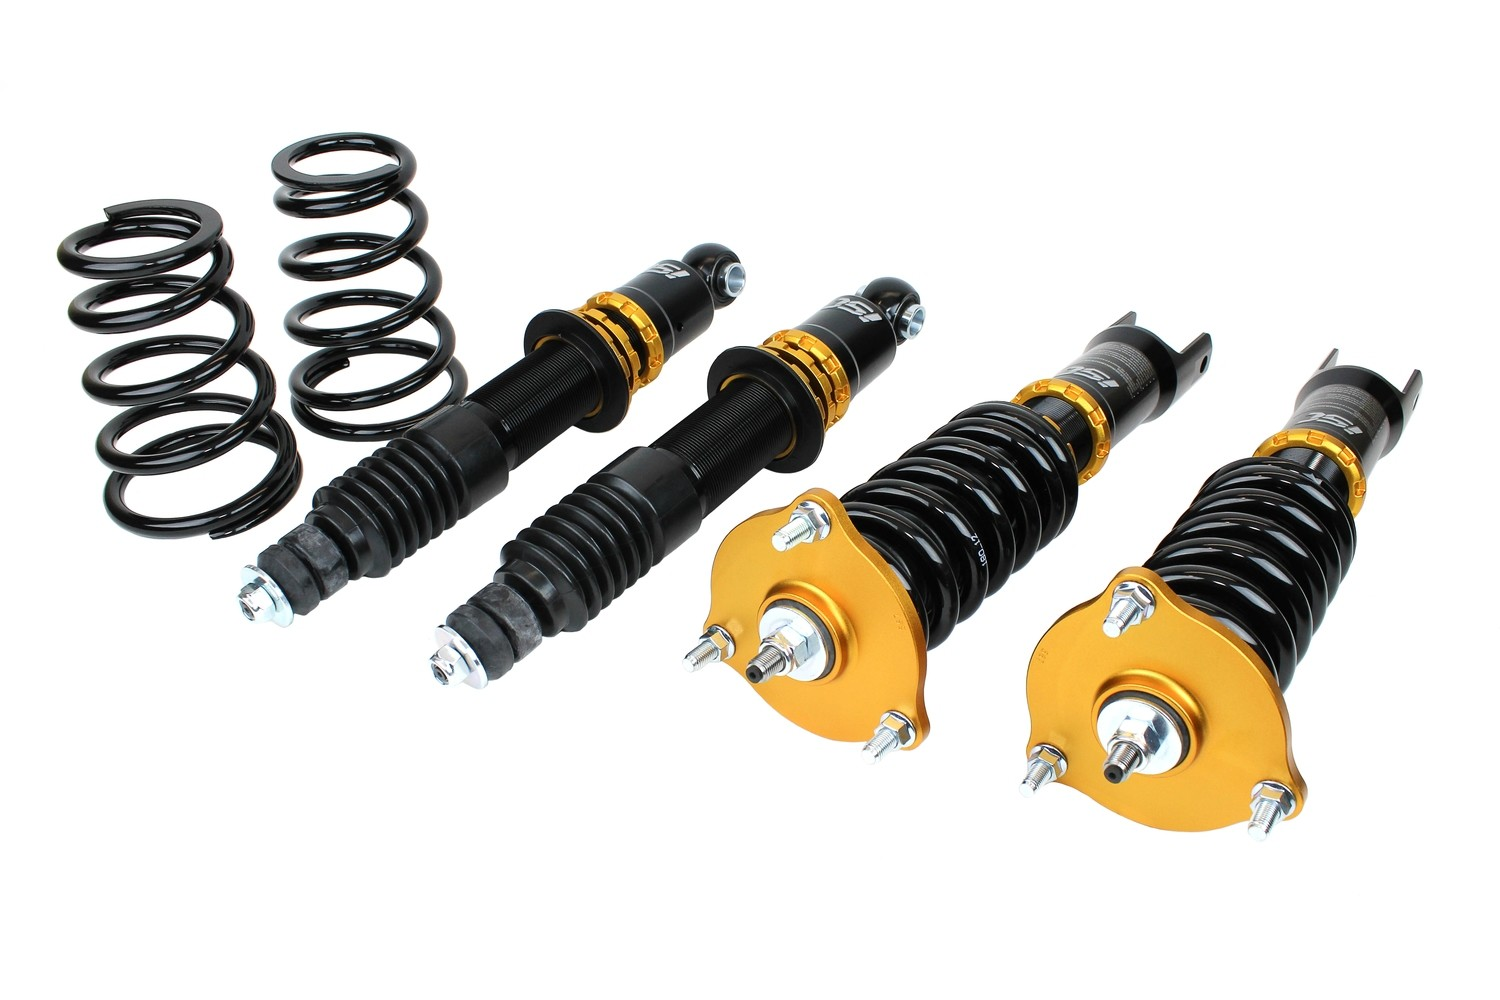 CLEARANCE: Mazda Miata ND Chassis 16+ ISC Basic Coilover Suspension- STREET SPORT ONLY